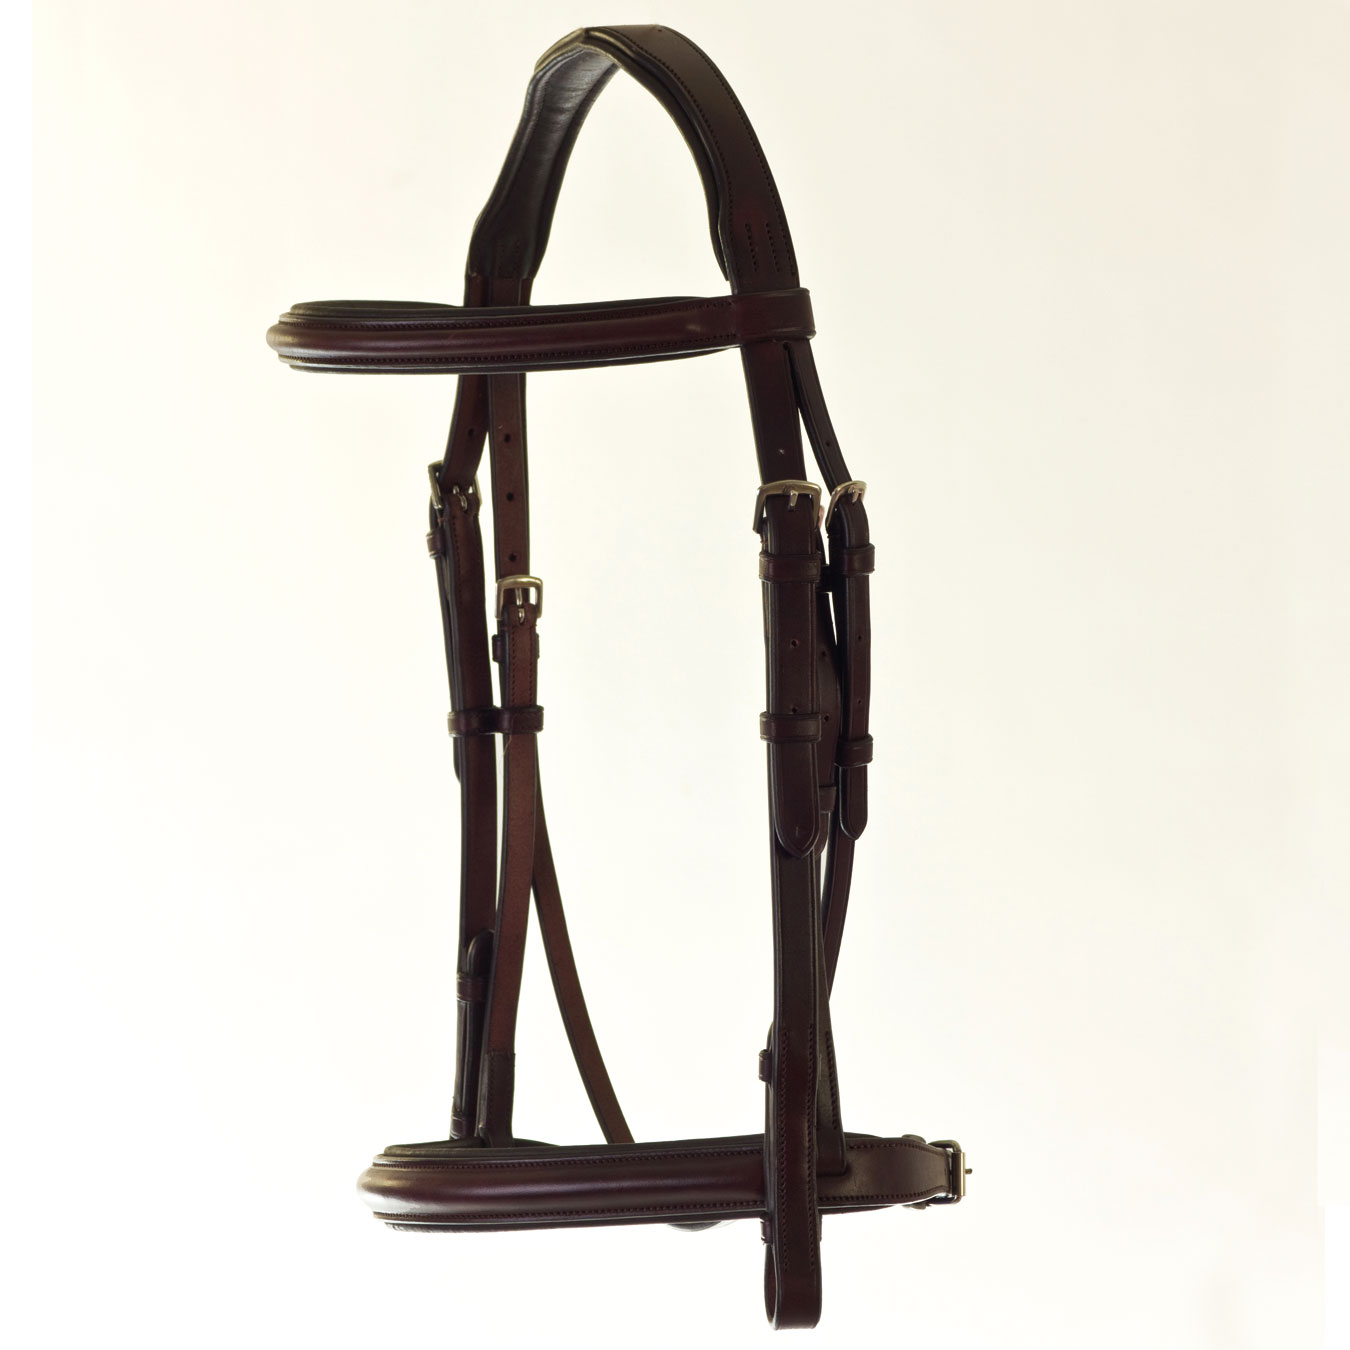 HyCLASS Deluxe Padded Headpiece Cavesson Bridle